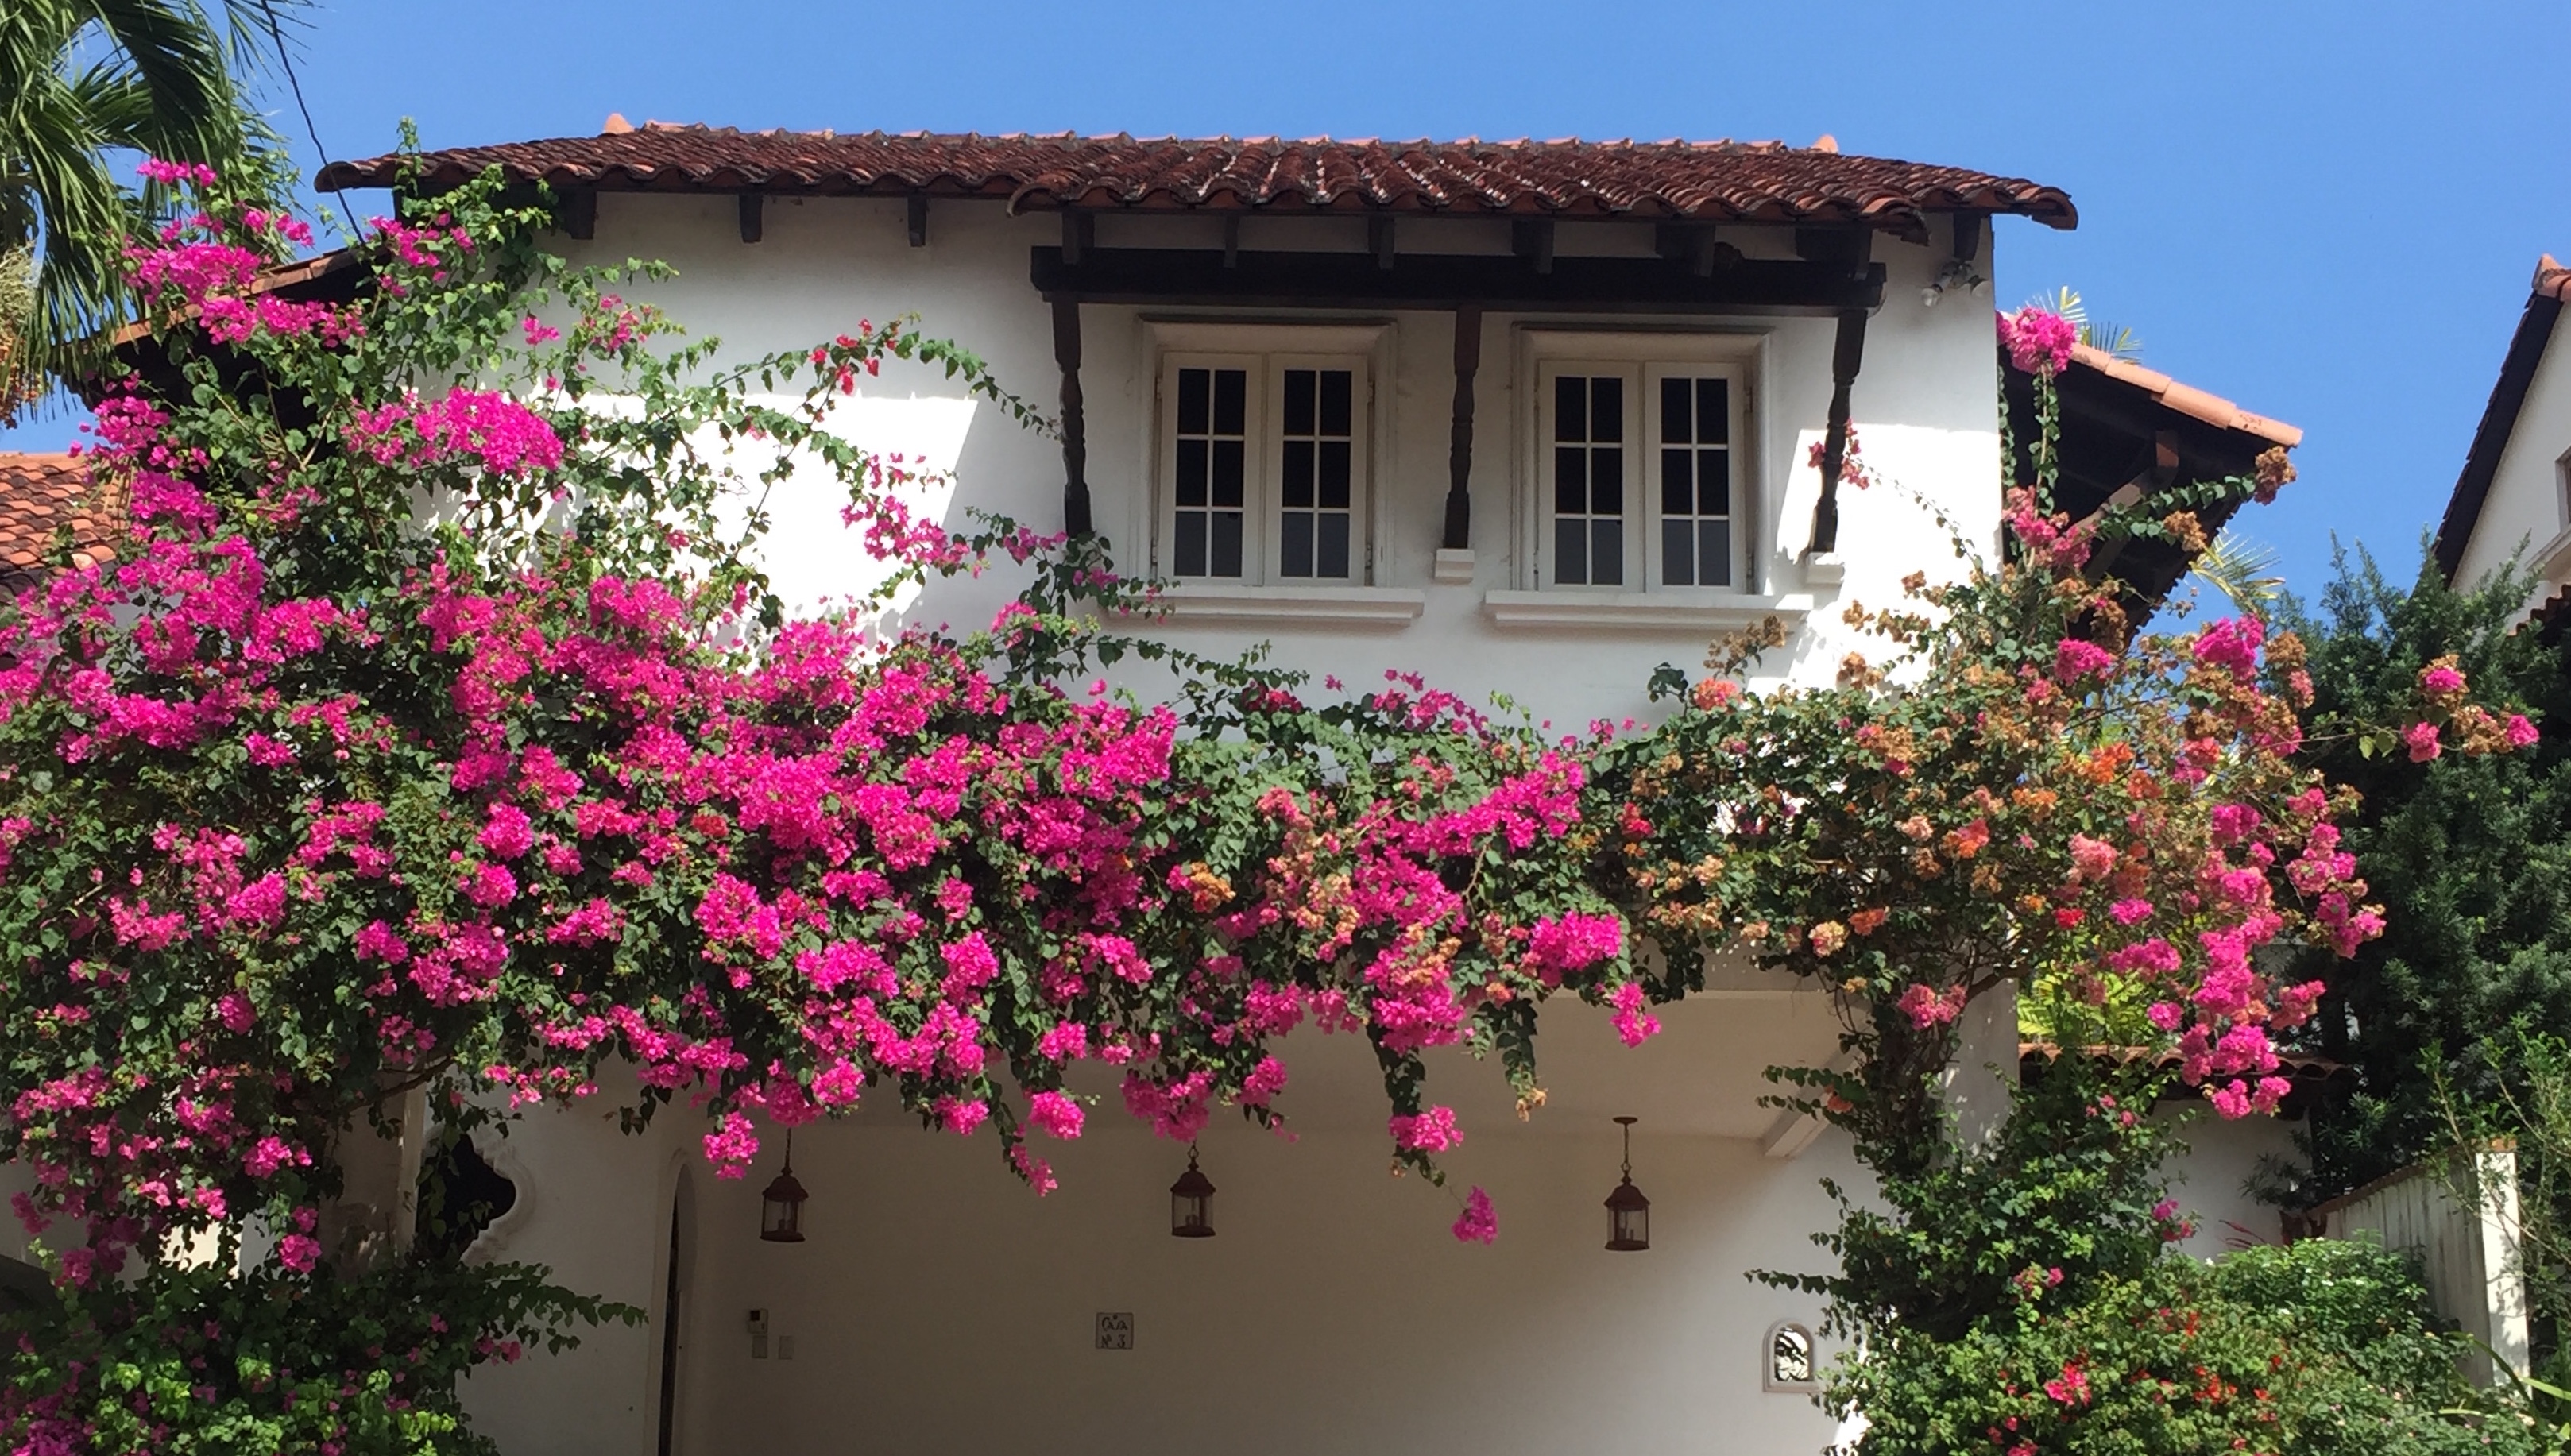 ForSale-Chalet-CaobaRealty-SanFrancisco-AltosDelGolf-PanamaCity